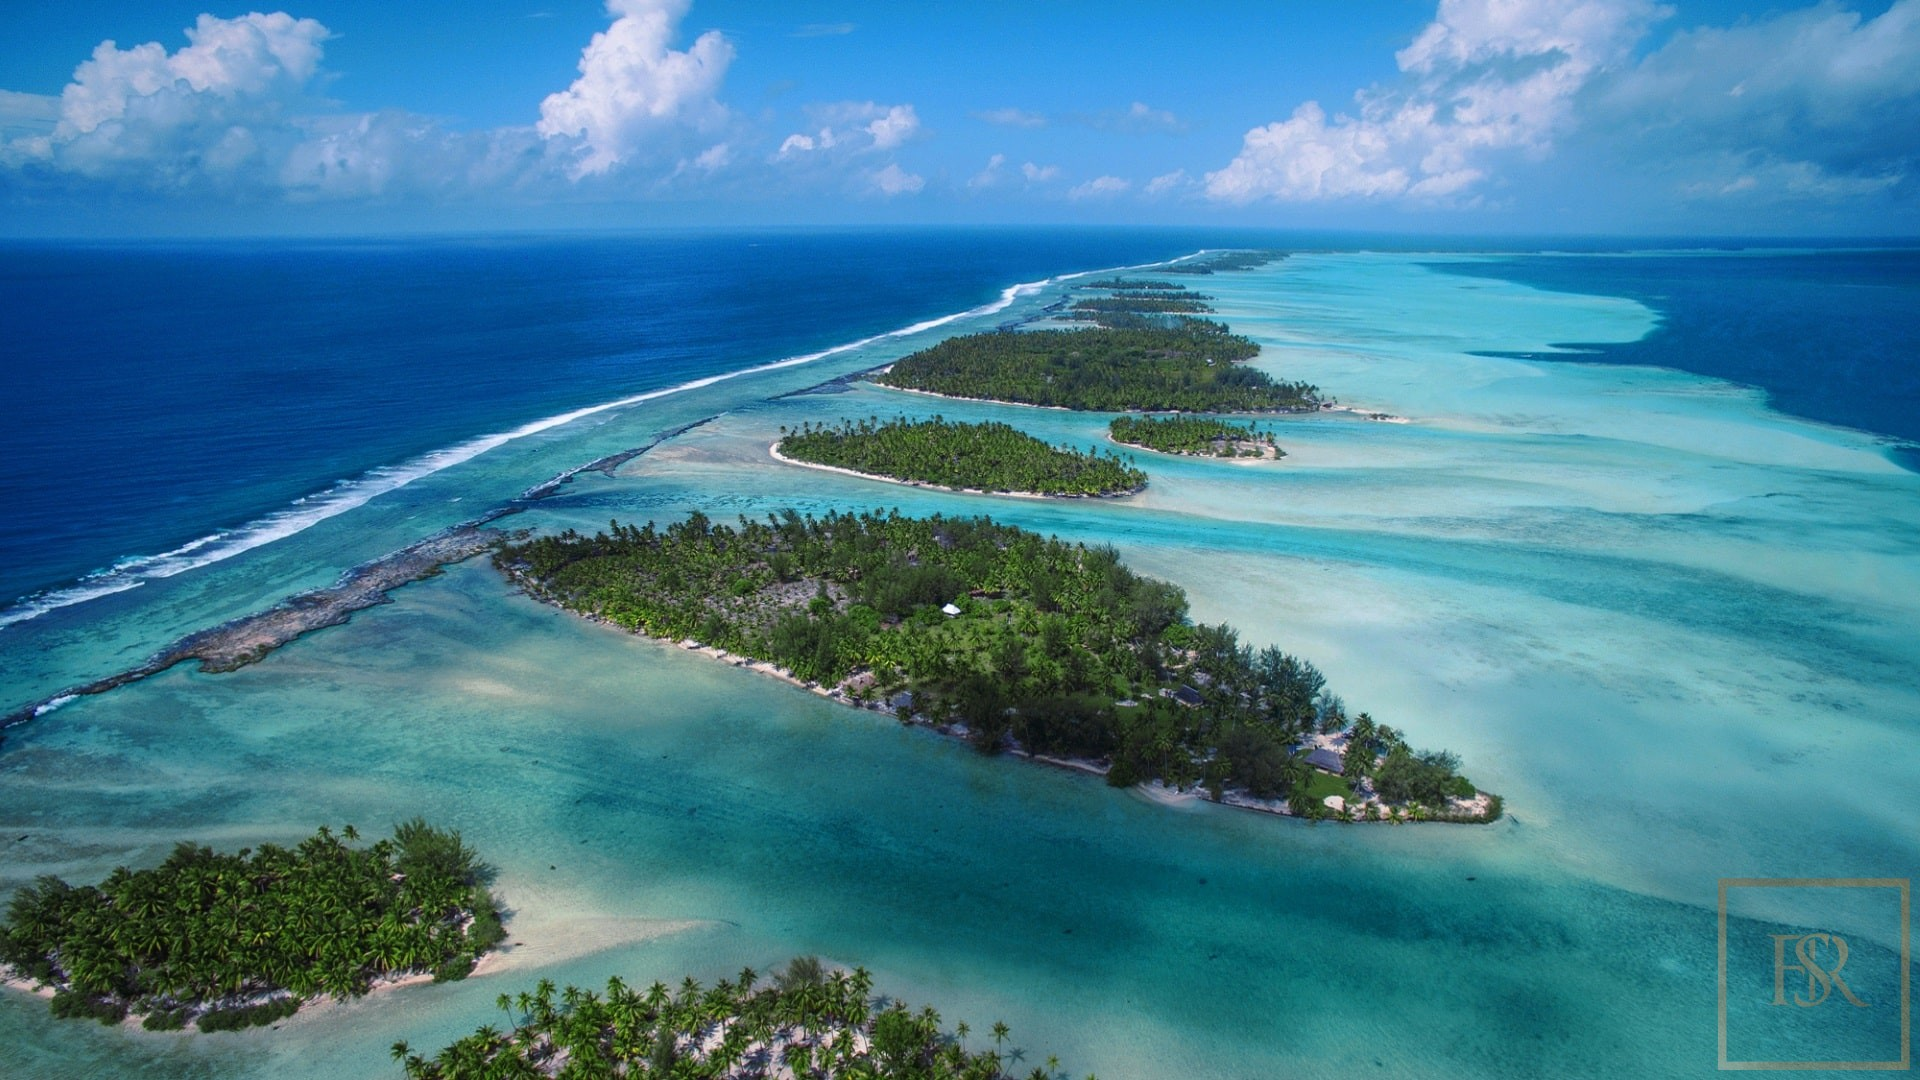 For super rich ultra luxury real estate properties homes, most expensive houses, buy unique penthouse apartment and ultimate villa in Taha'a Motu Moie French Polynesia for sale